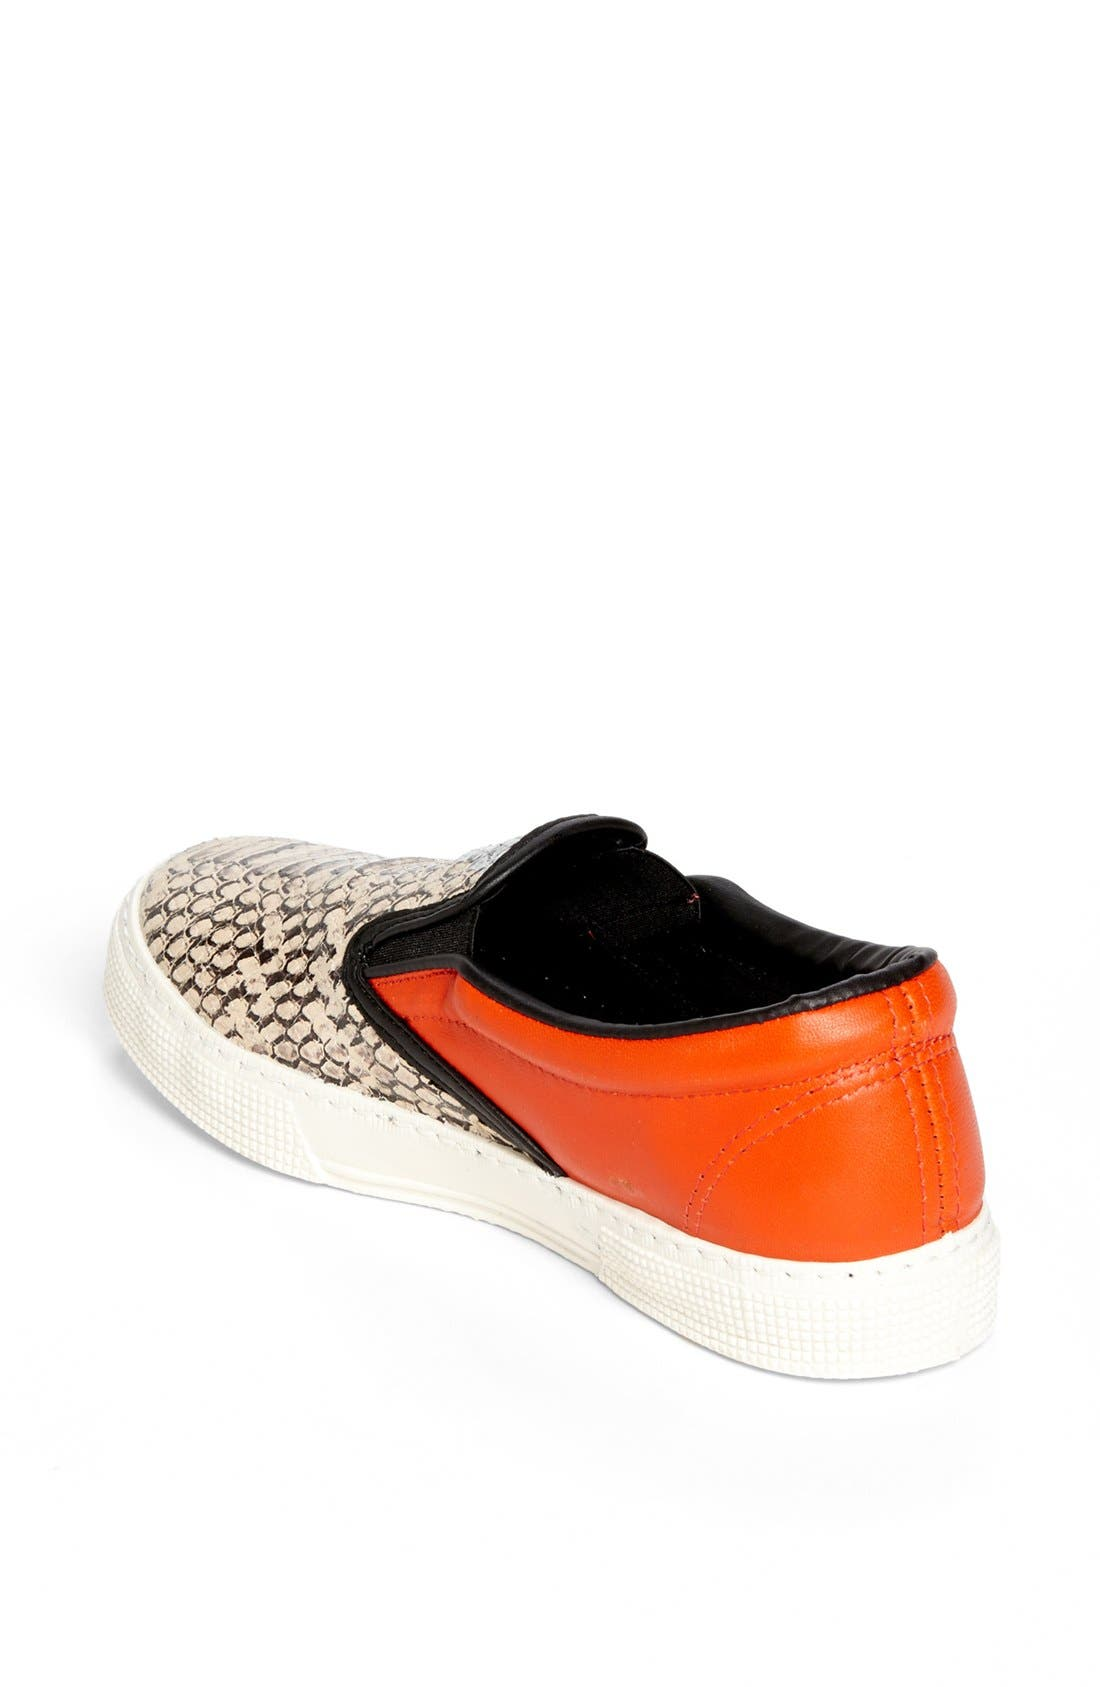 Alternate Image 2  - Kurt Geiger London Slip-On Sneaker